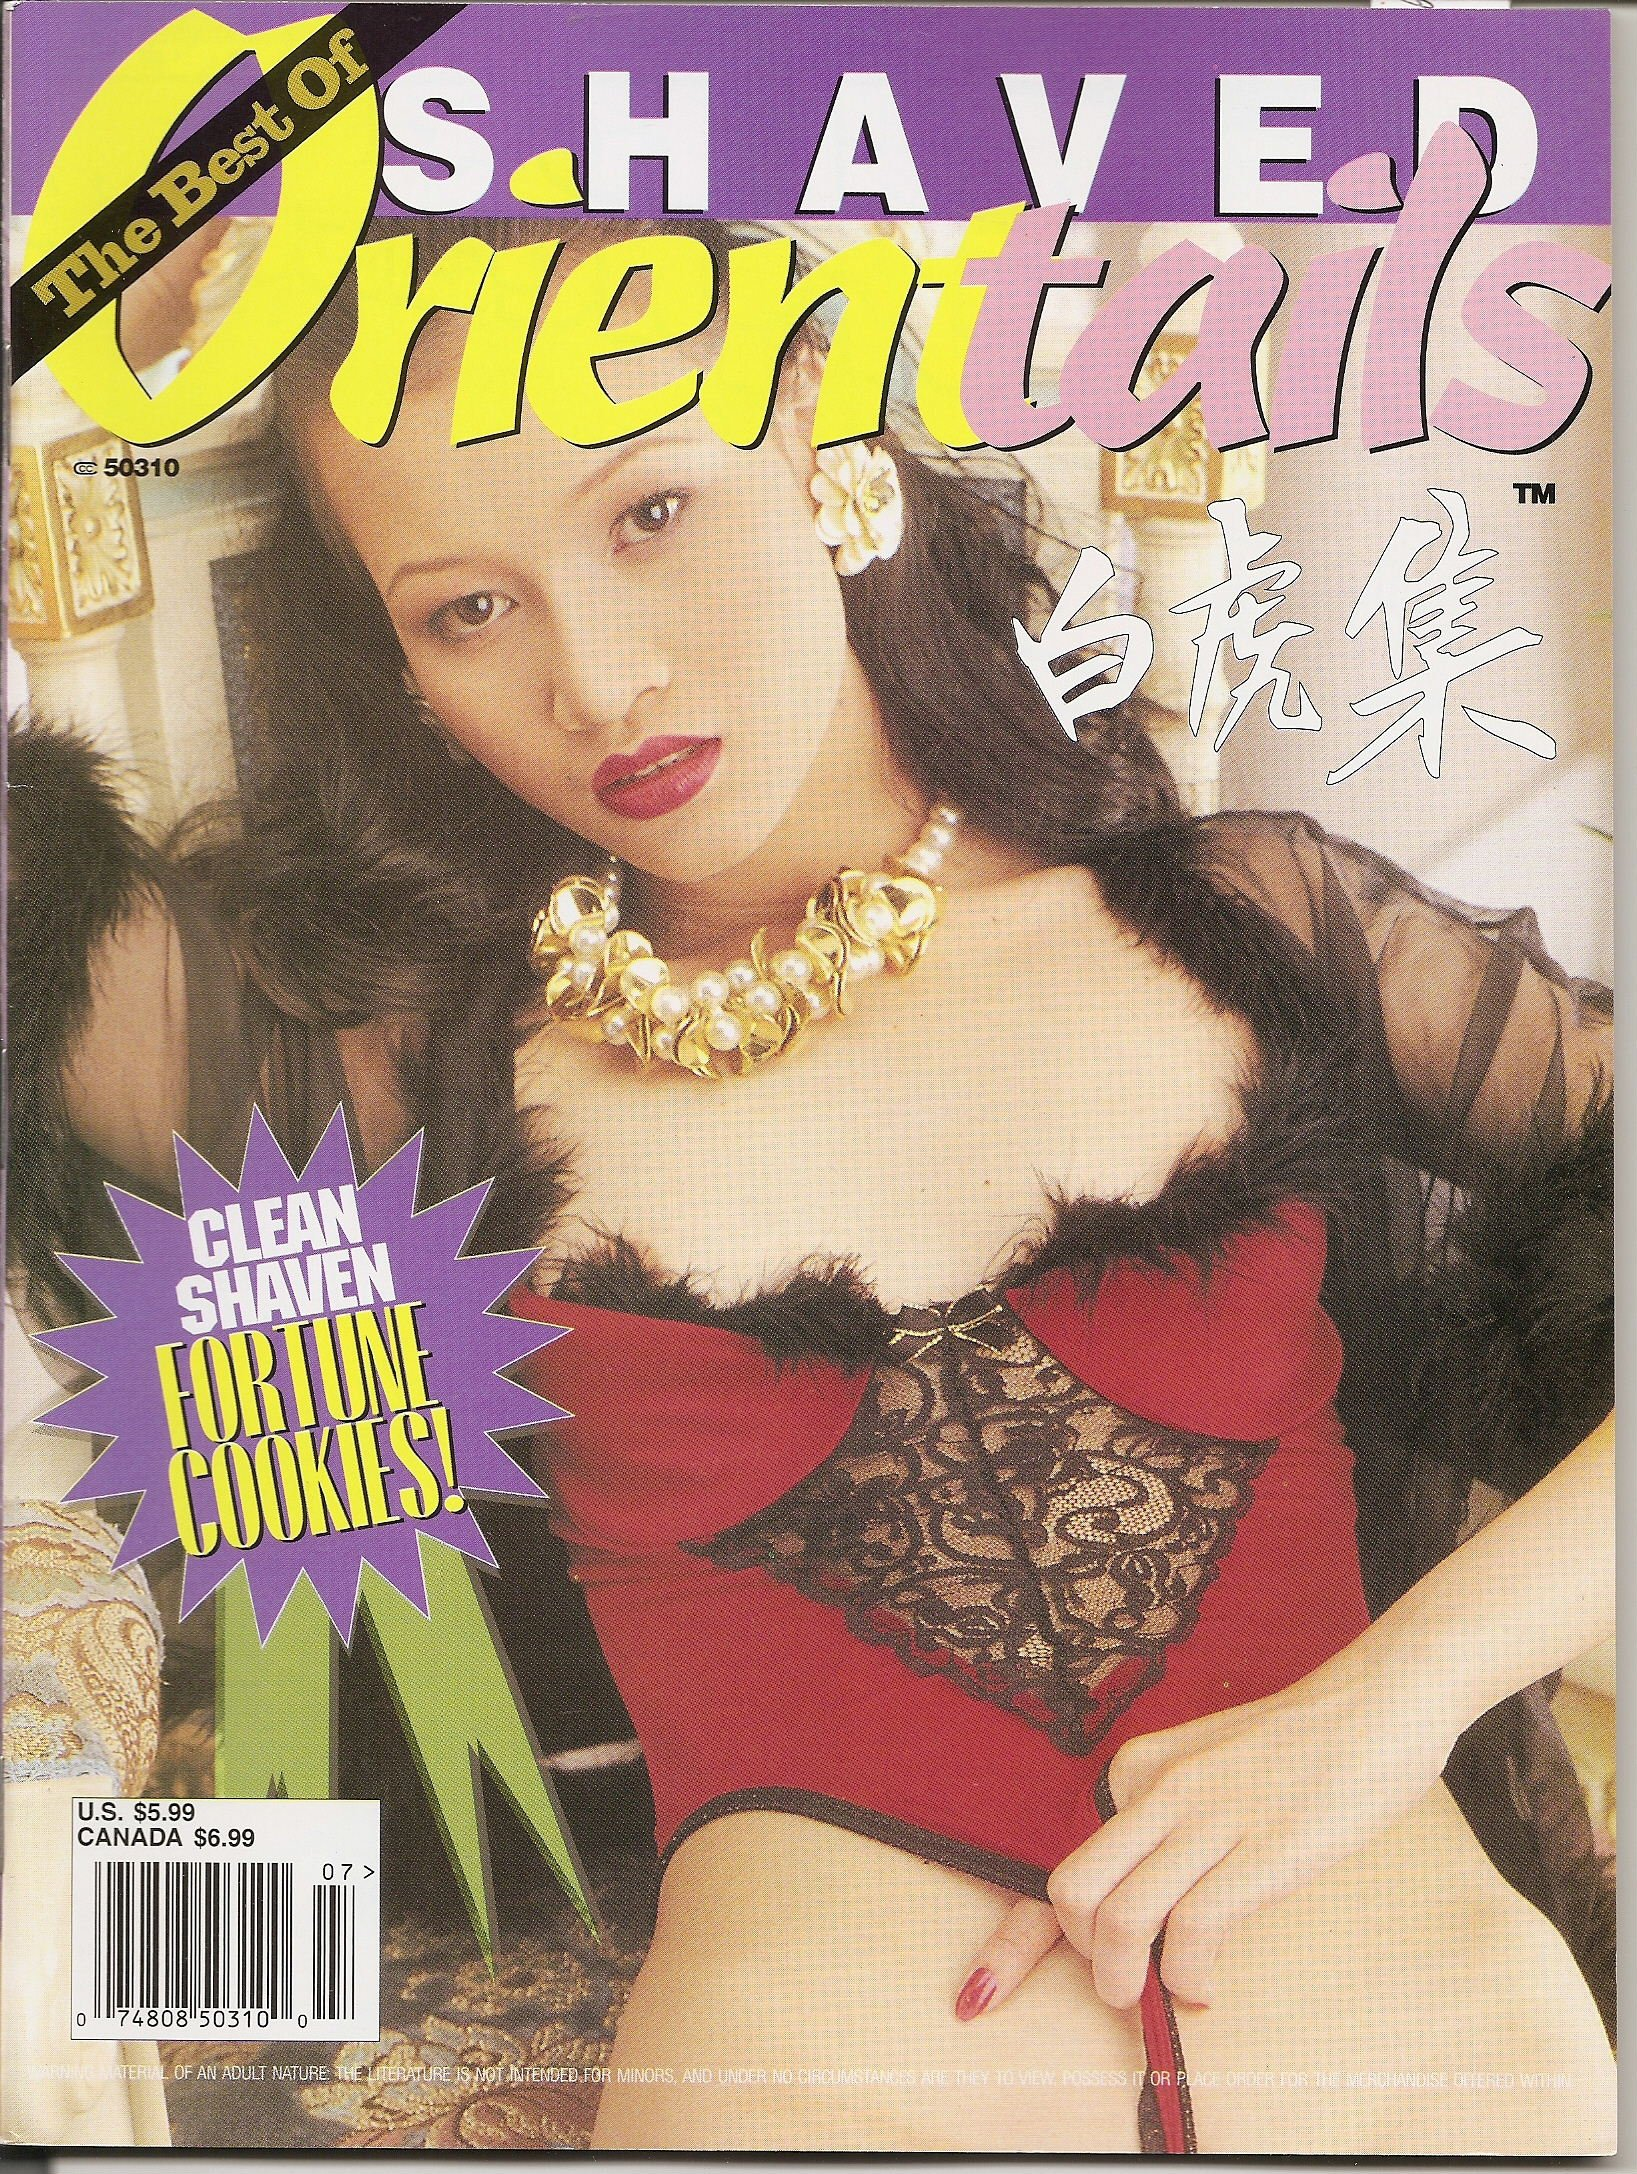 Best of Shaved Orientails Busty Adult Magazine